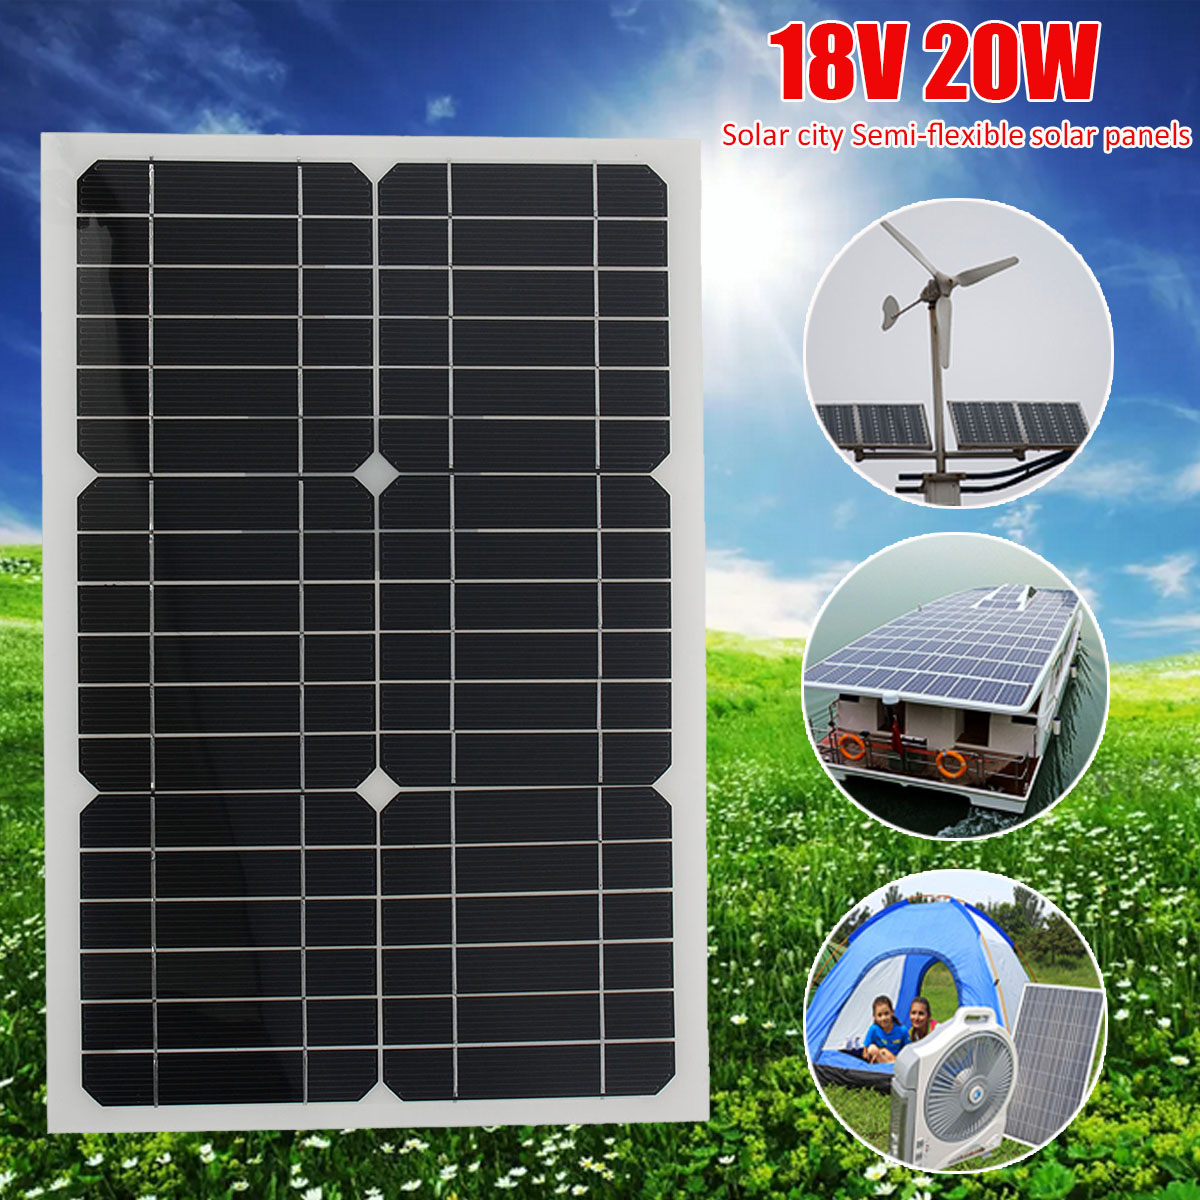 LEORY 20W 18V Semi Flexible Light Weight Solar Panels Portbale DIY Solar Panel With 3 meter Cable For Car Battery diy photovoltaic panels durable 20w solar cells charging 18v solar panel